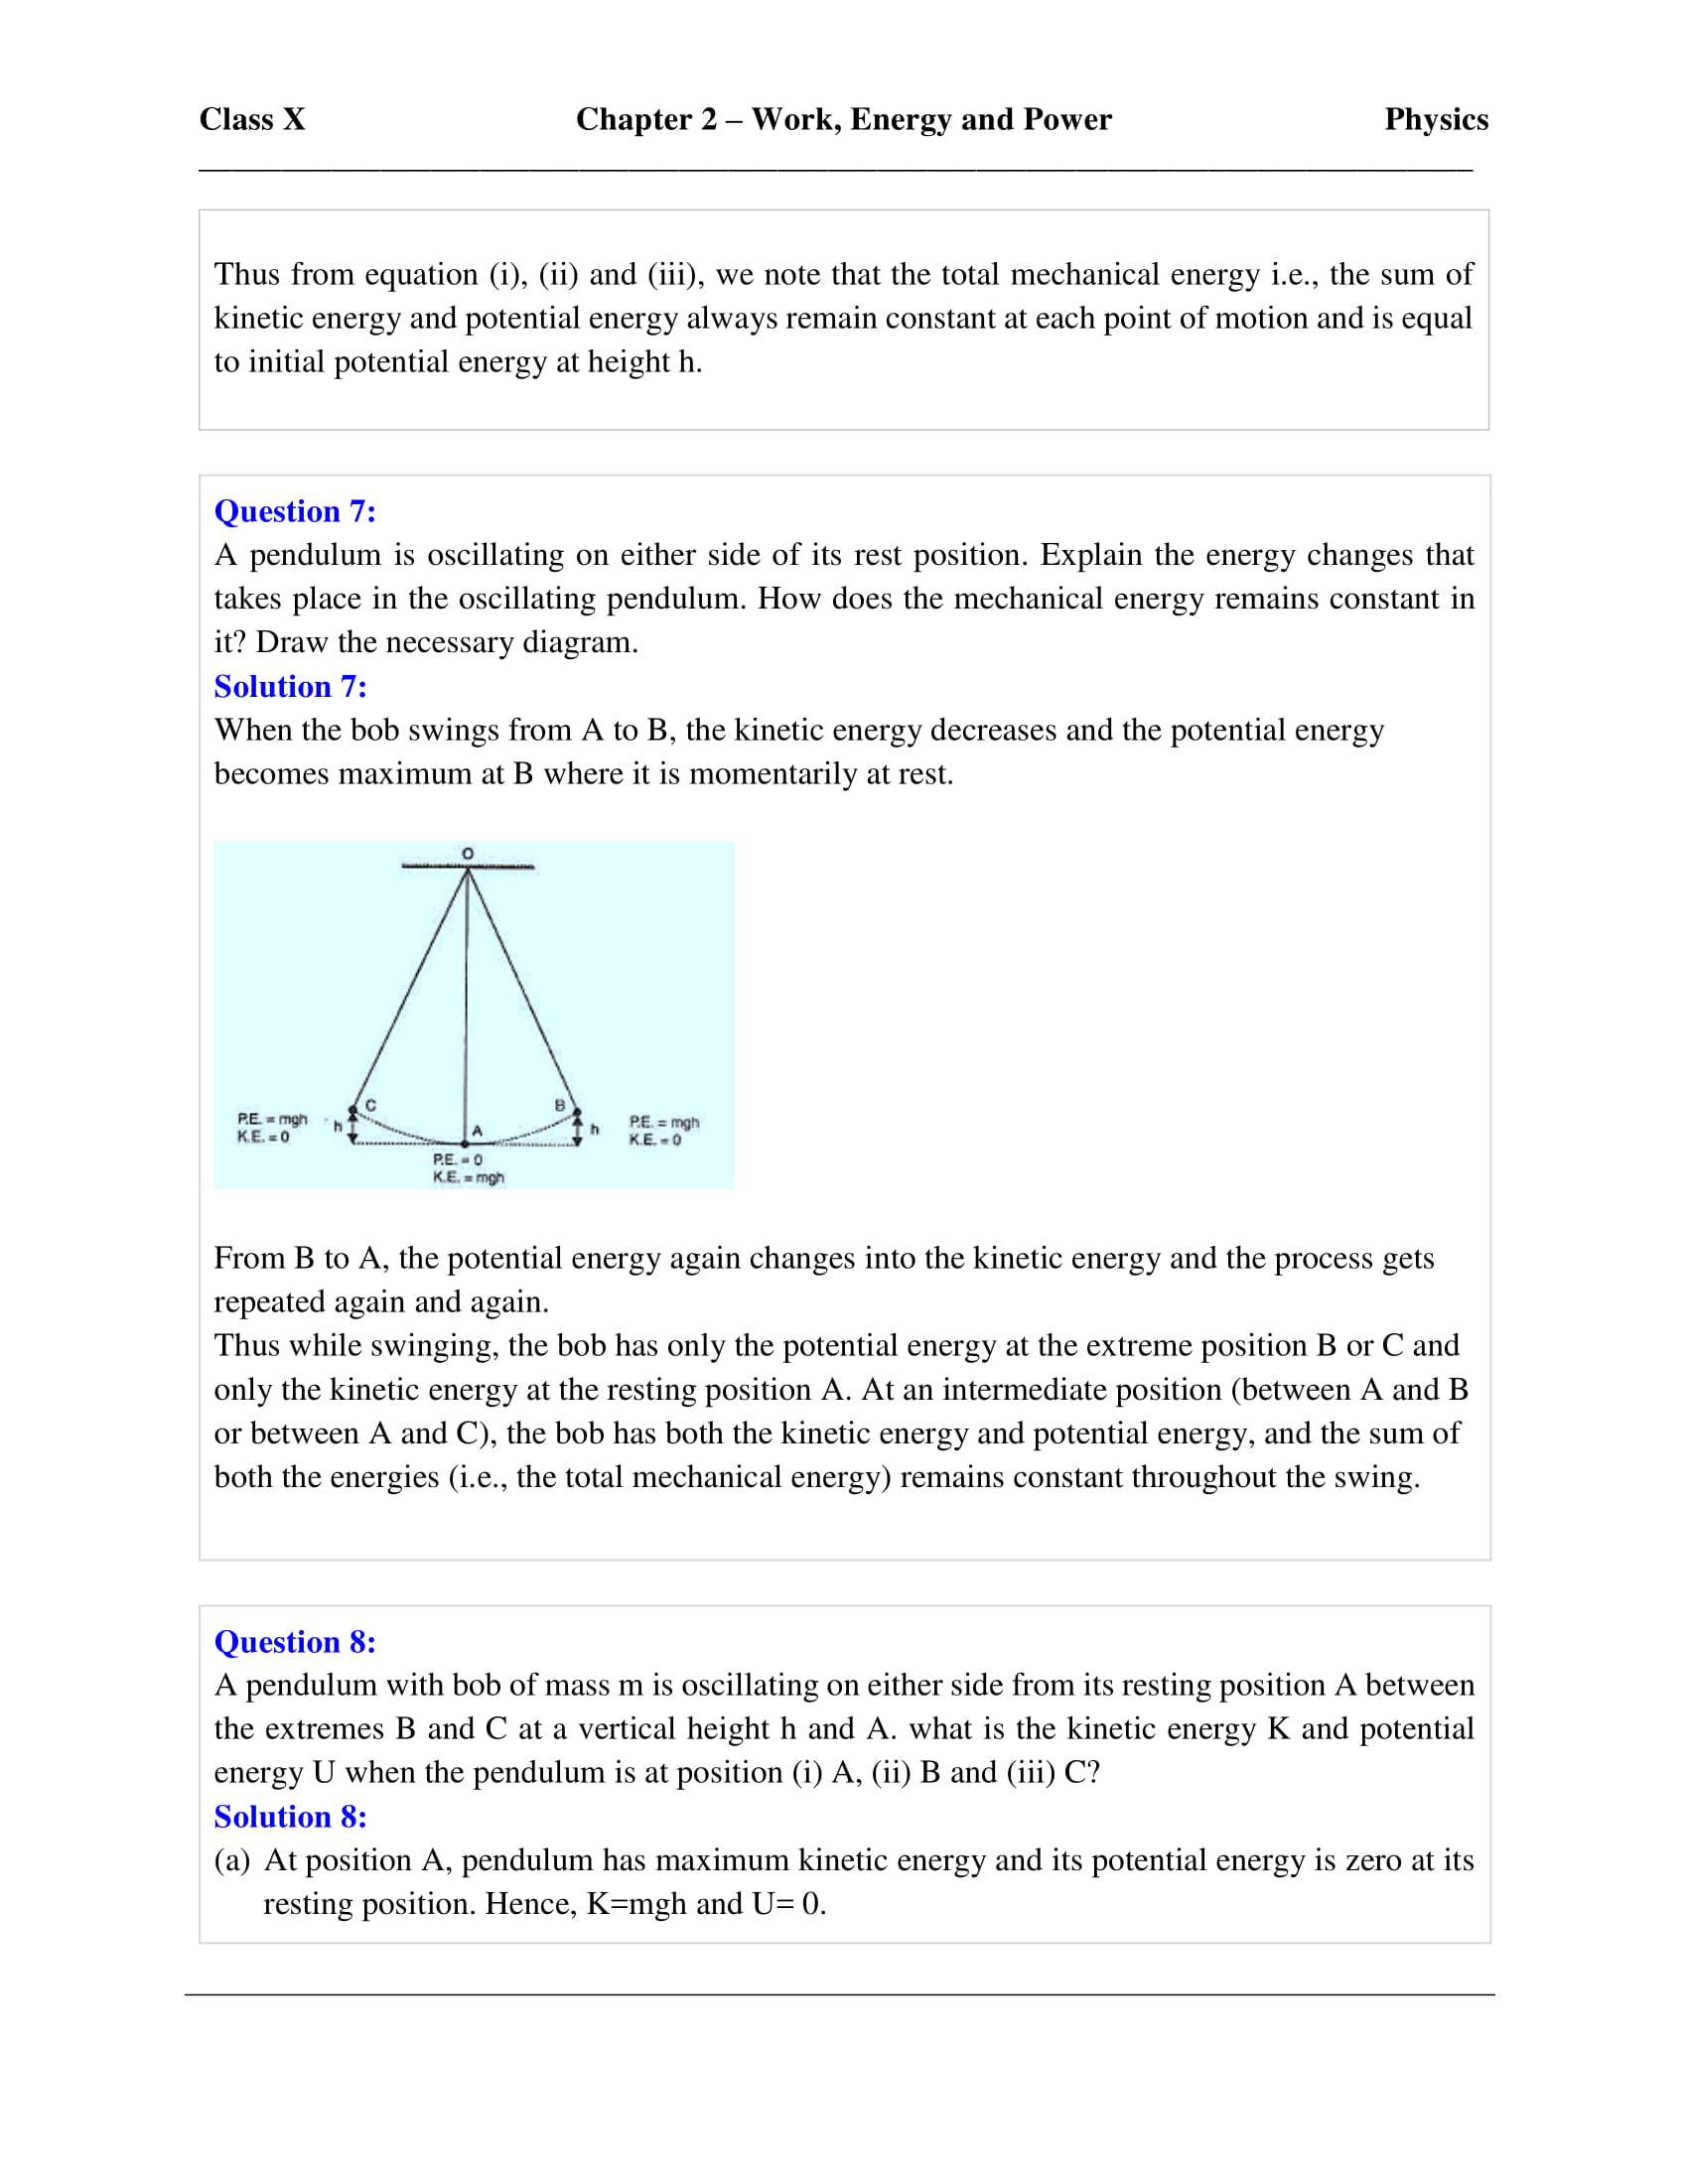 icse-selina-physics-solutions-class-10-chapter-2-work-energy-and-power-43